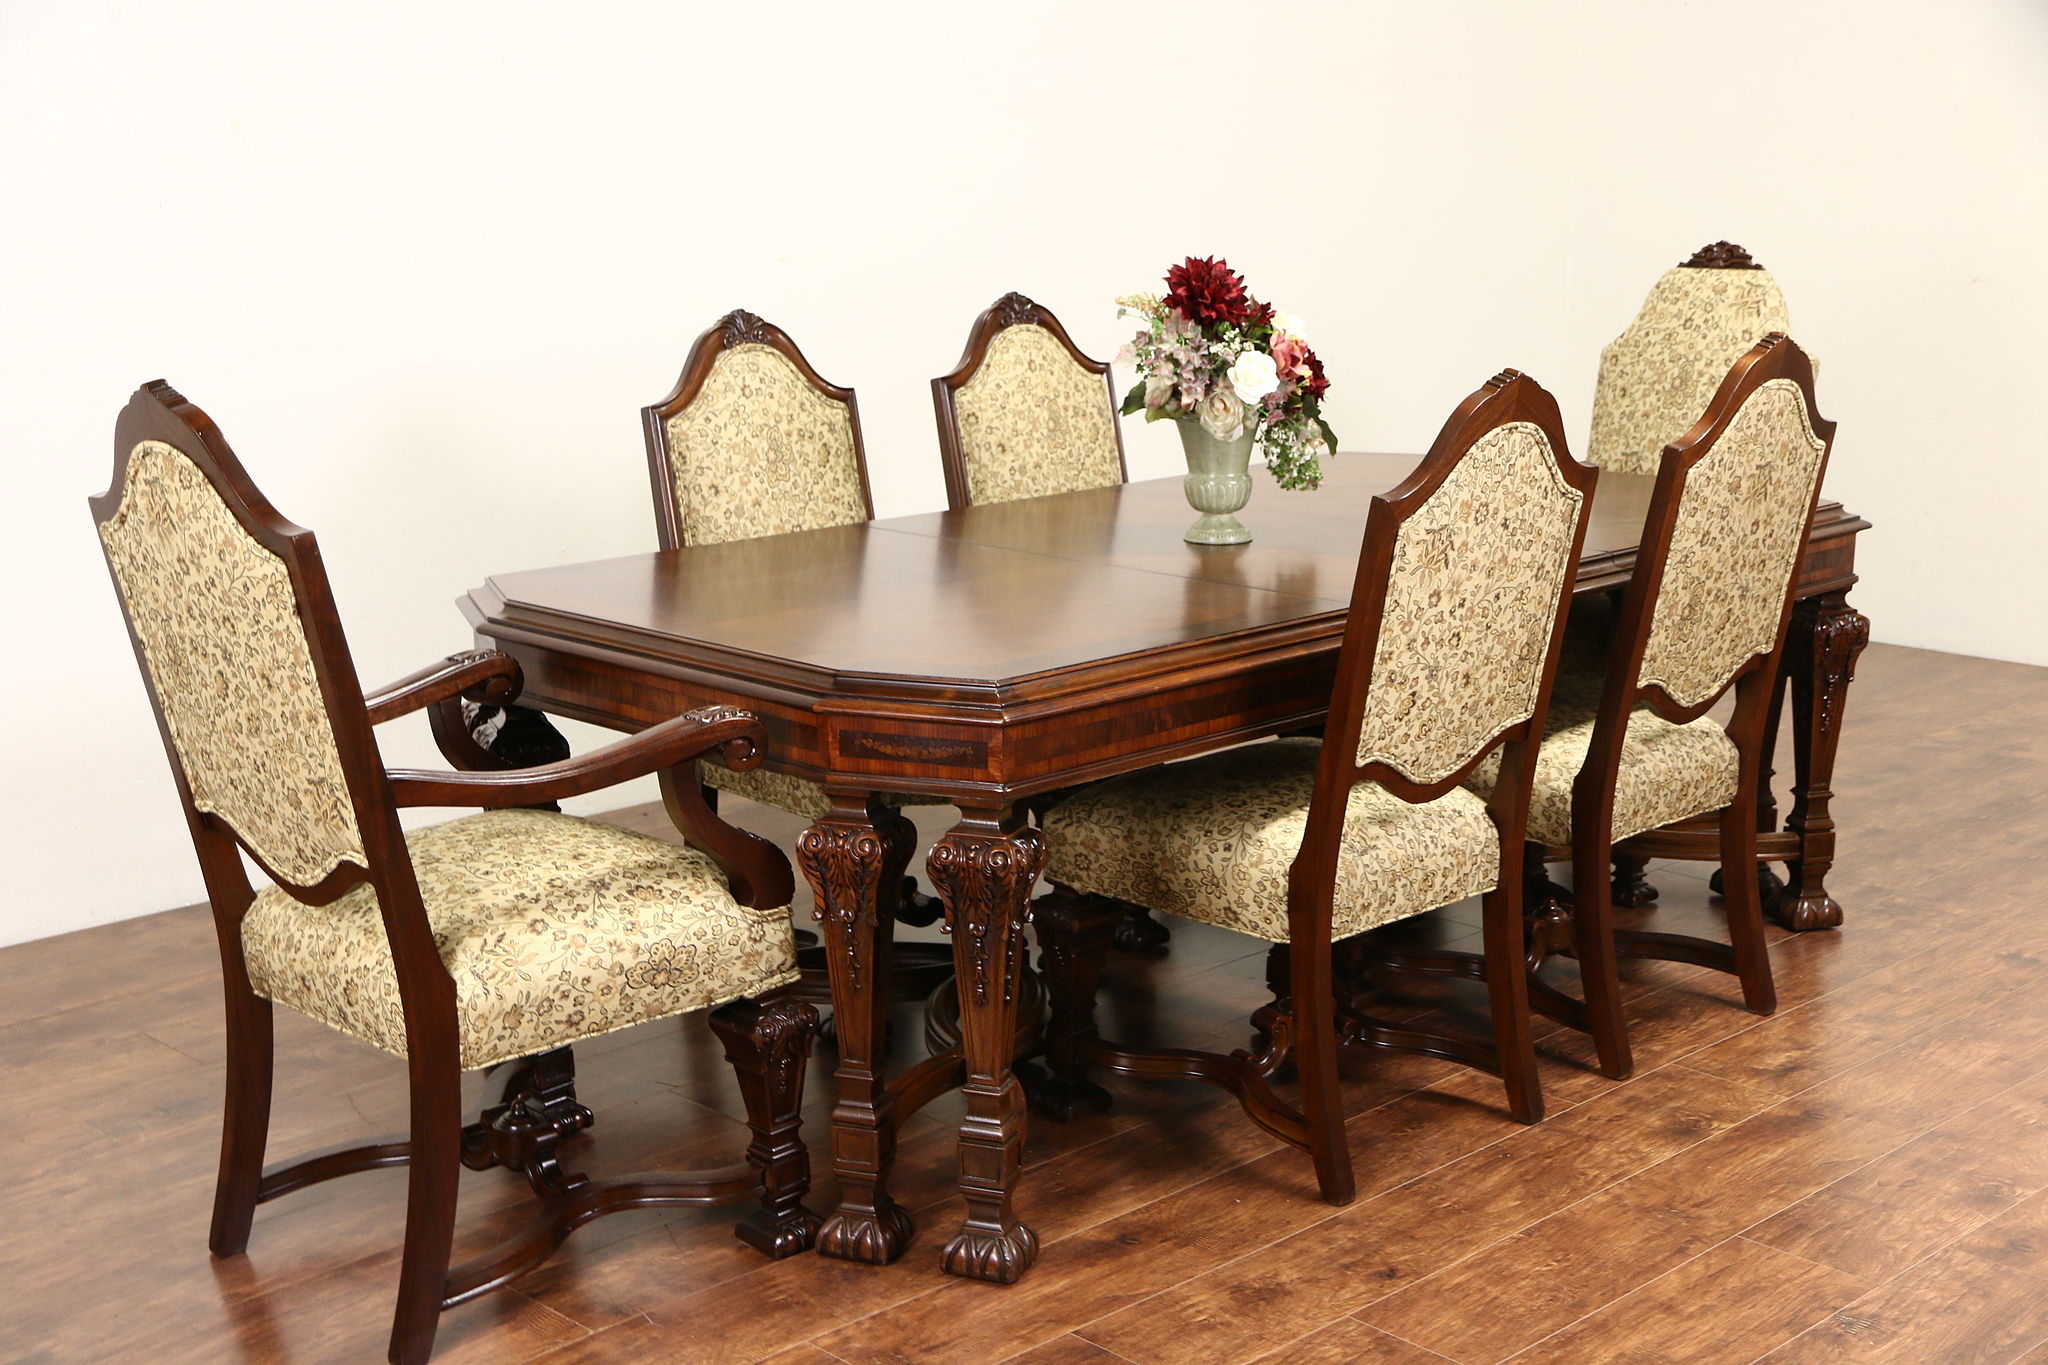 Renaissance Carved 1920 Banded Dining Table Without Chairs